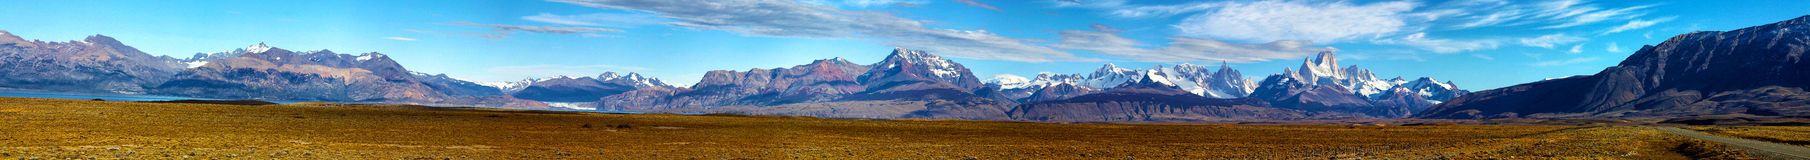 Panorama of Fitz Roy, Patagonia, Argentina. Great panorama of Mount Fitz Roy, Los Glaciares National Park, Patagonia Royalty Free Stock Images